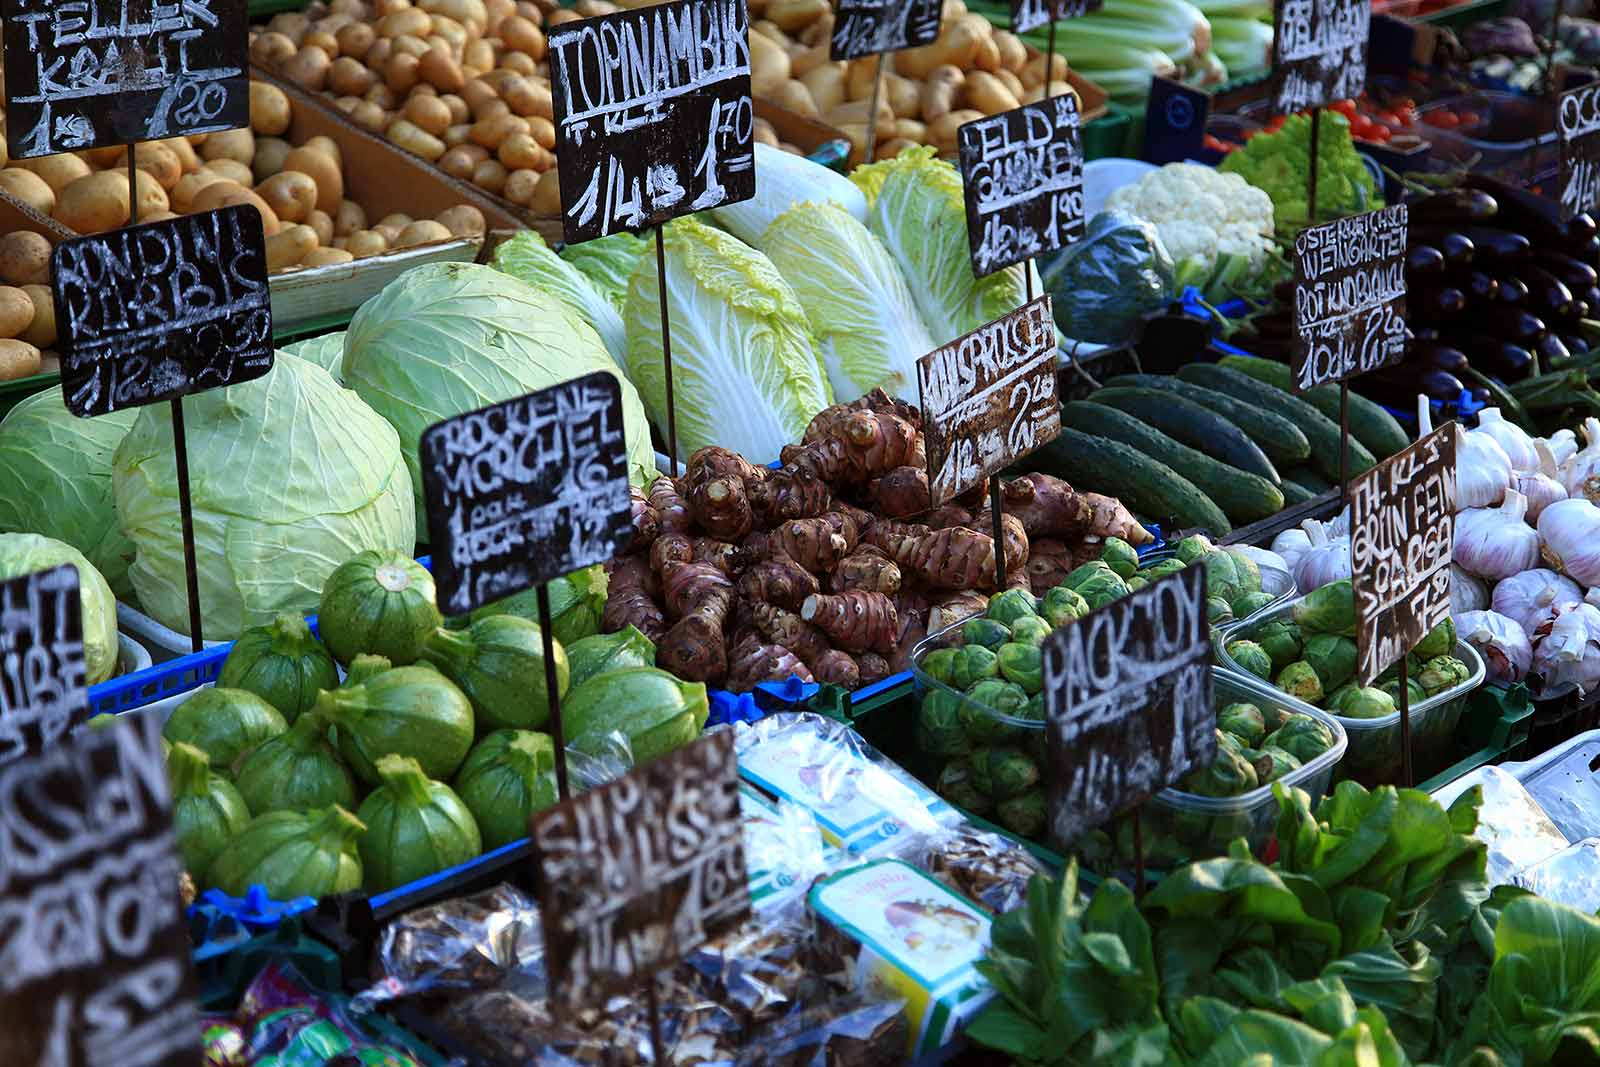 Vegetables at the Brunnenmarket in Vienna, Austria.